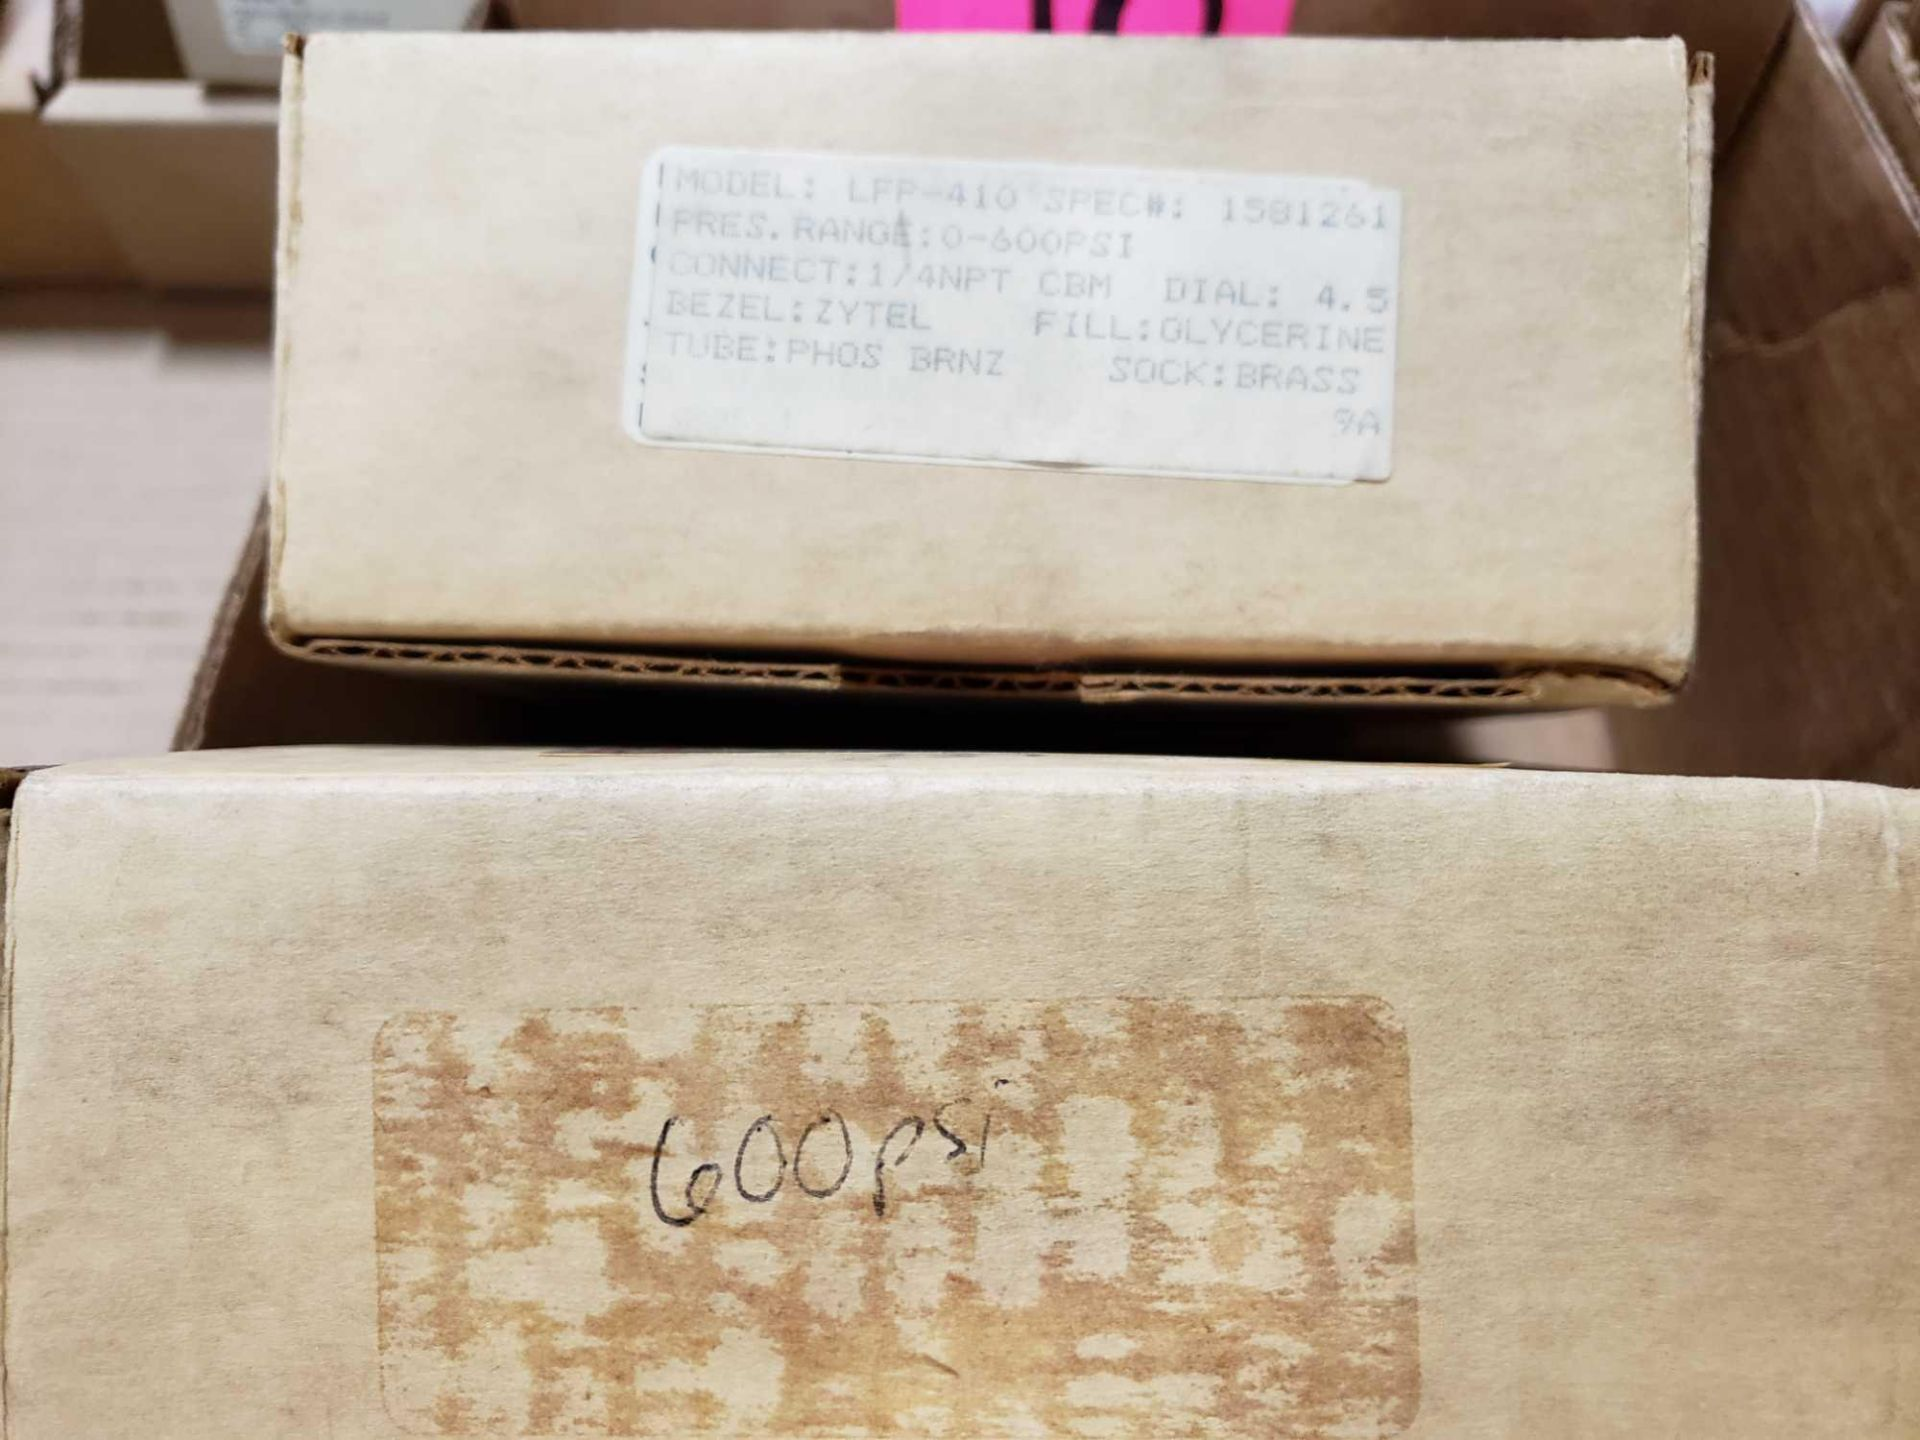 Lot 48 - Qty 4 - Span Instruments gauges. New in boxes as pictured.